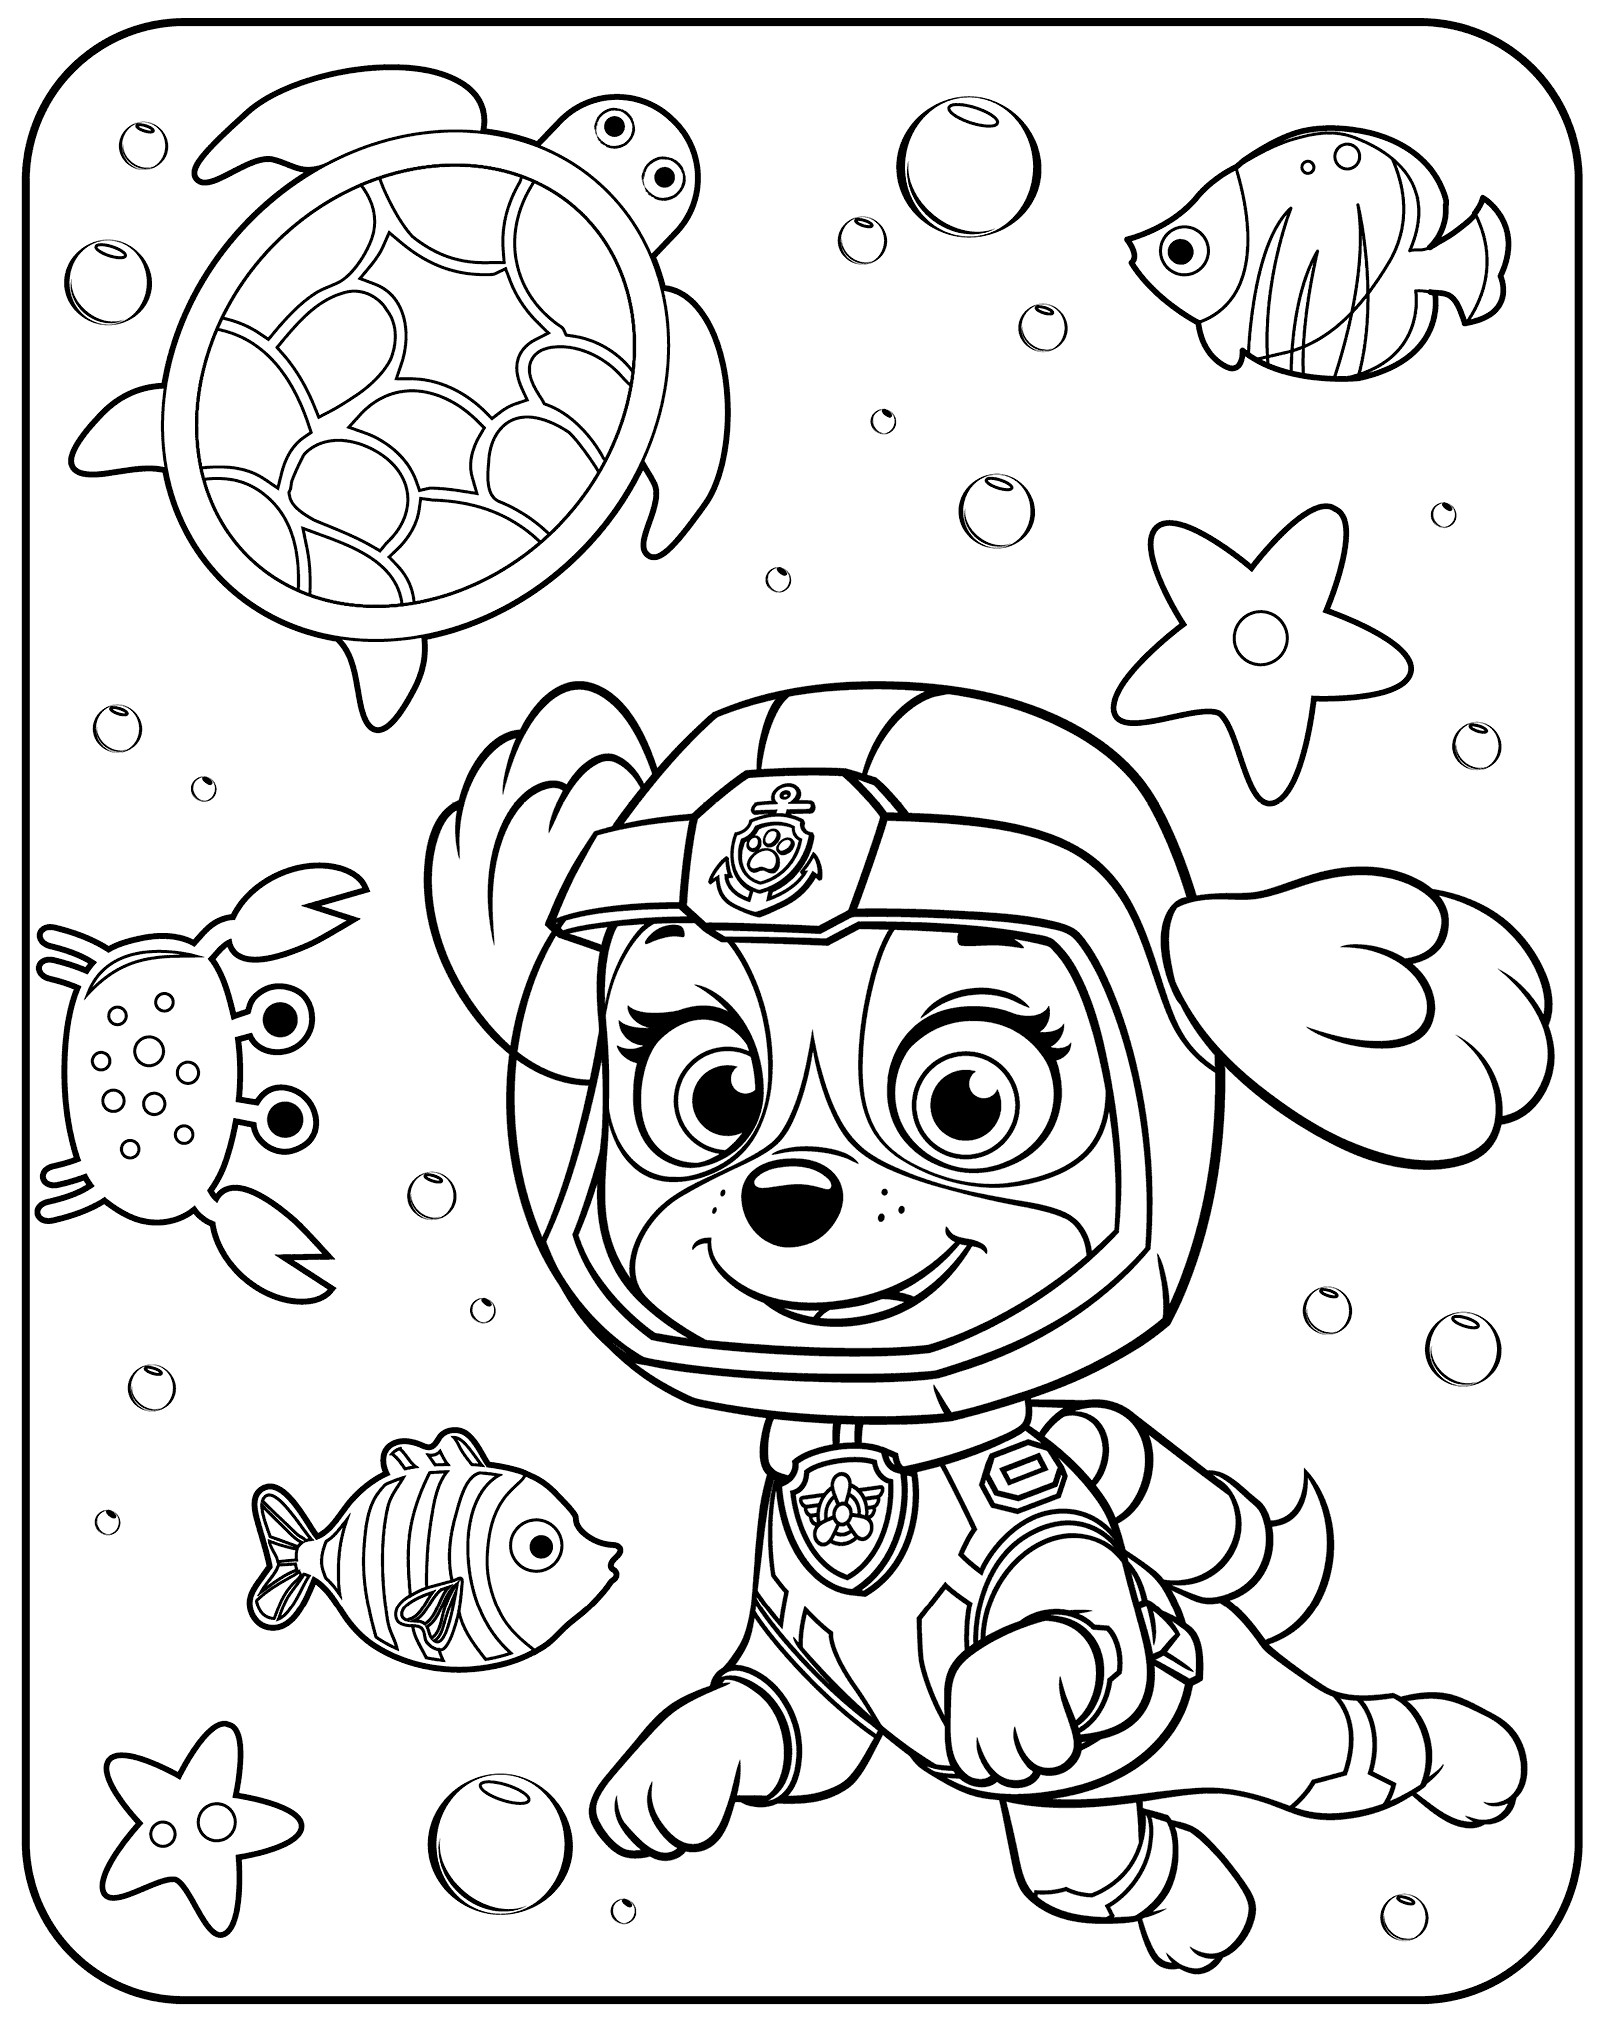 Paw Patrol Coloring Pages To Print at GetDrawings | Free ...